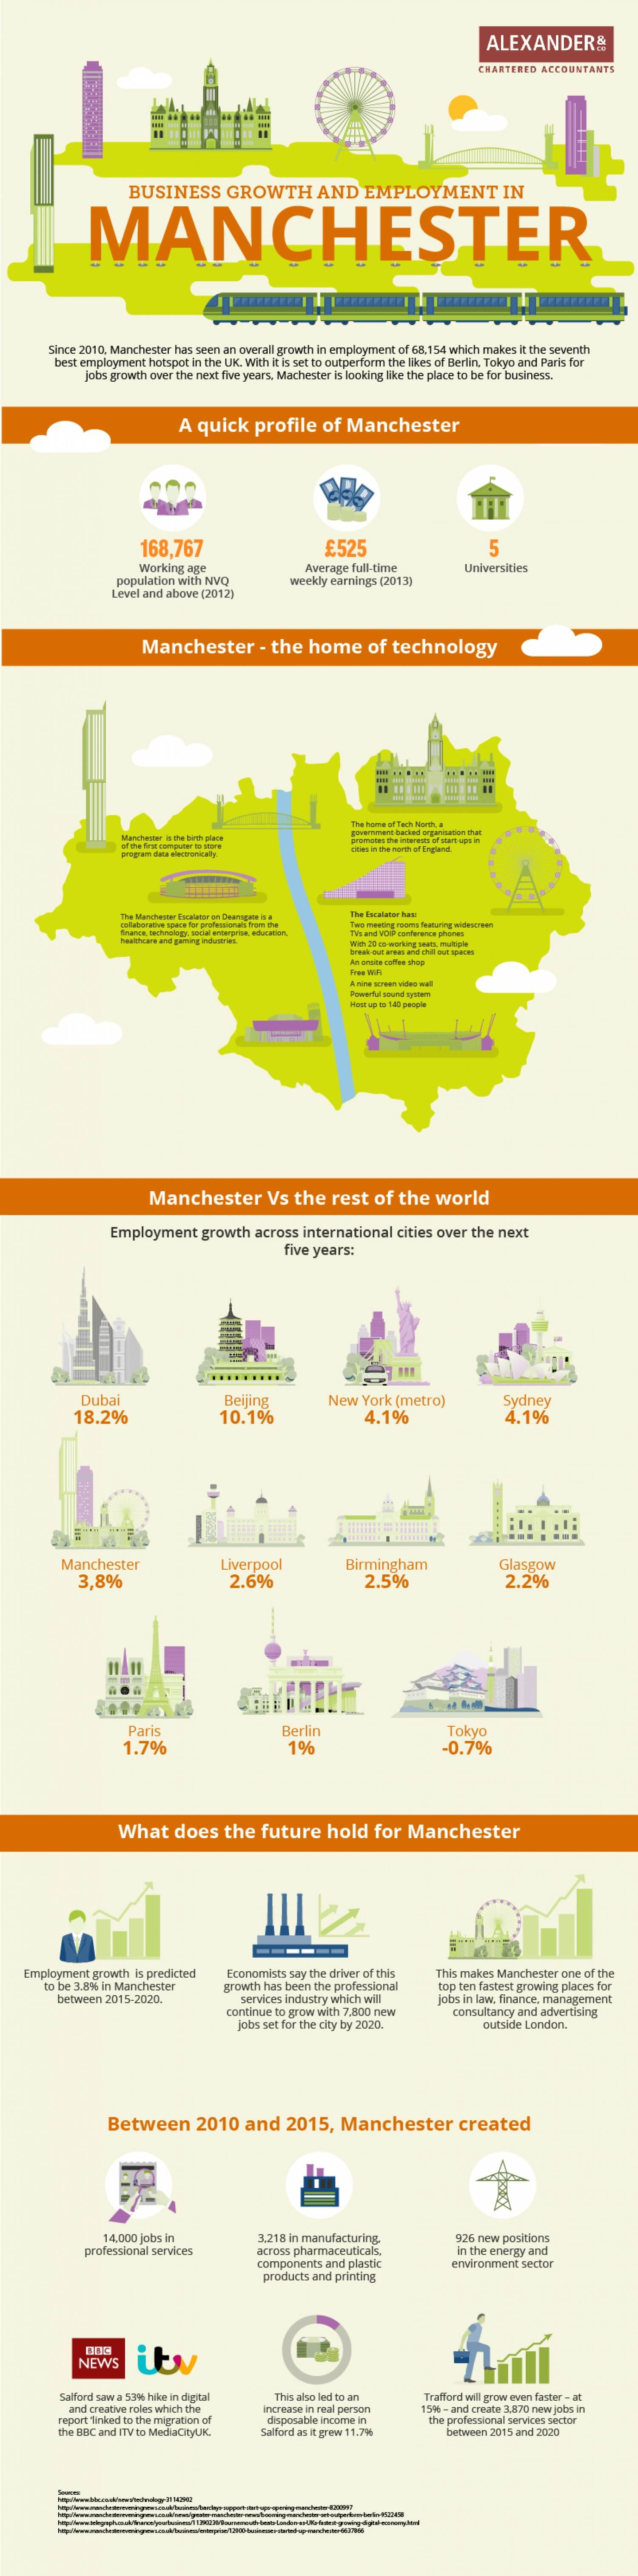 A look at the growth of business in Manchester in recent years